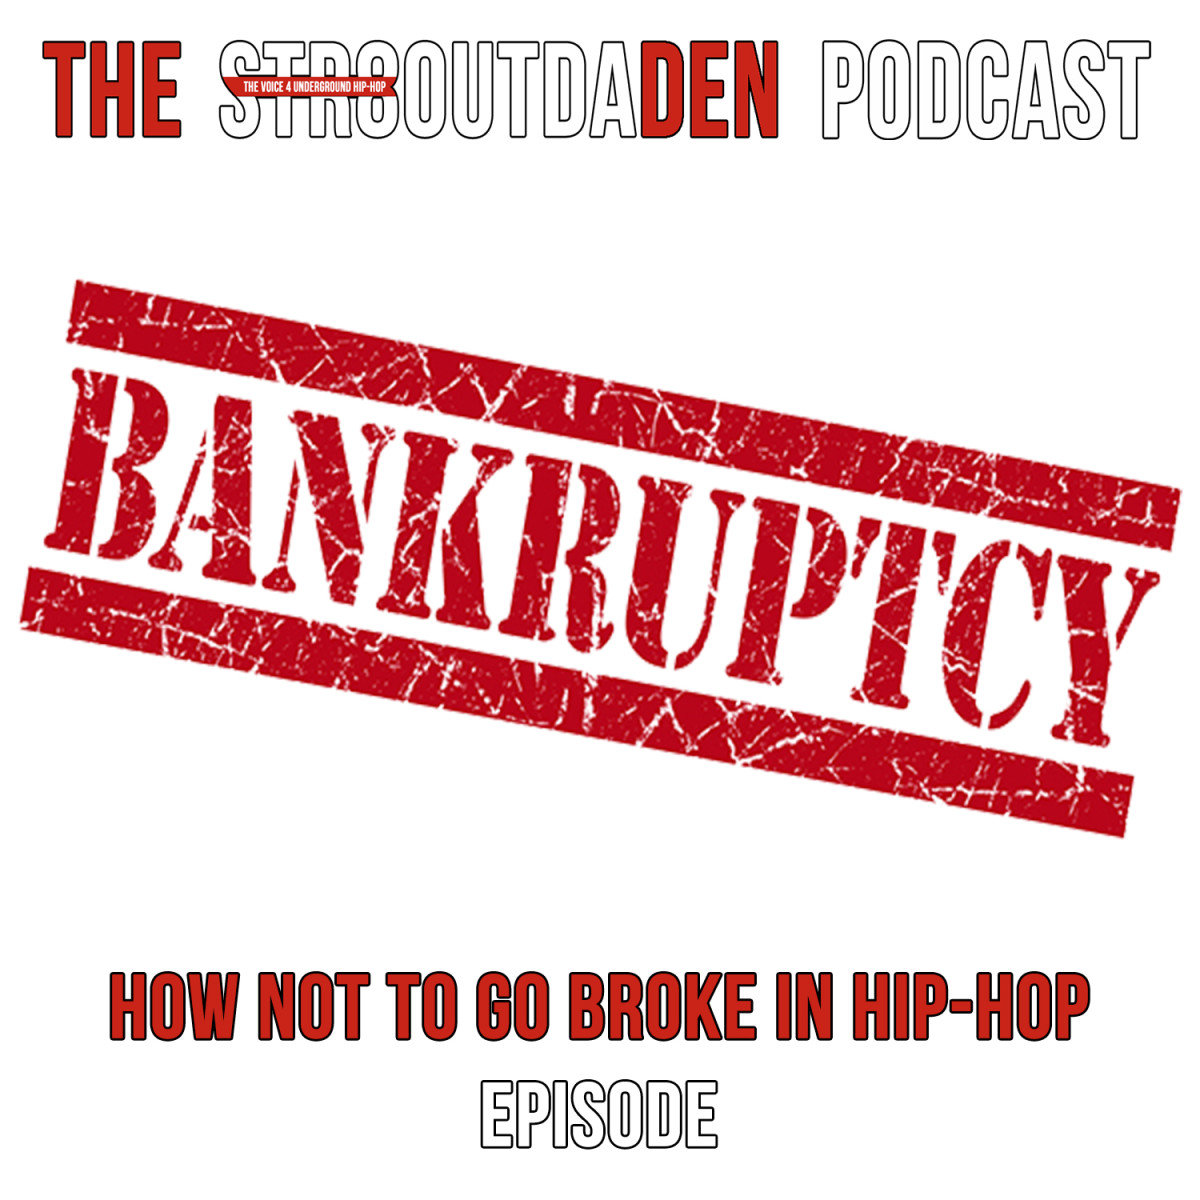 How Not To Go Broke In Hip-Hop